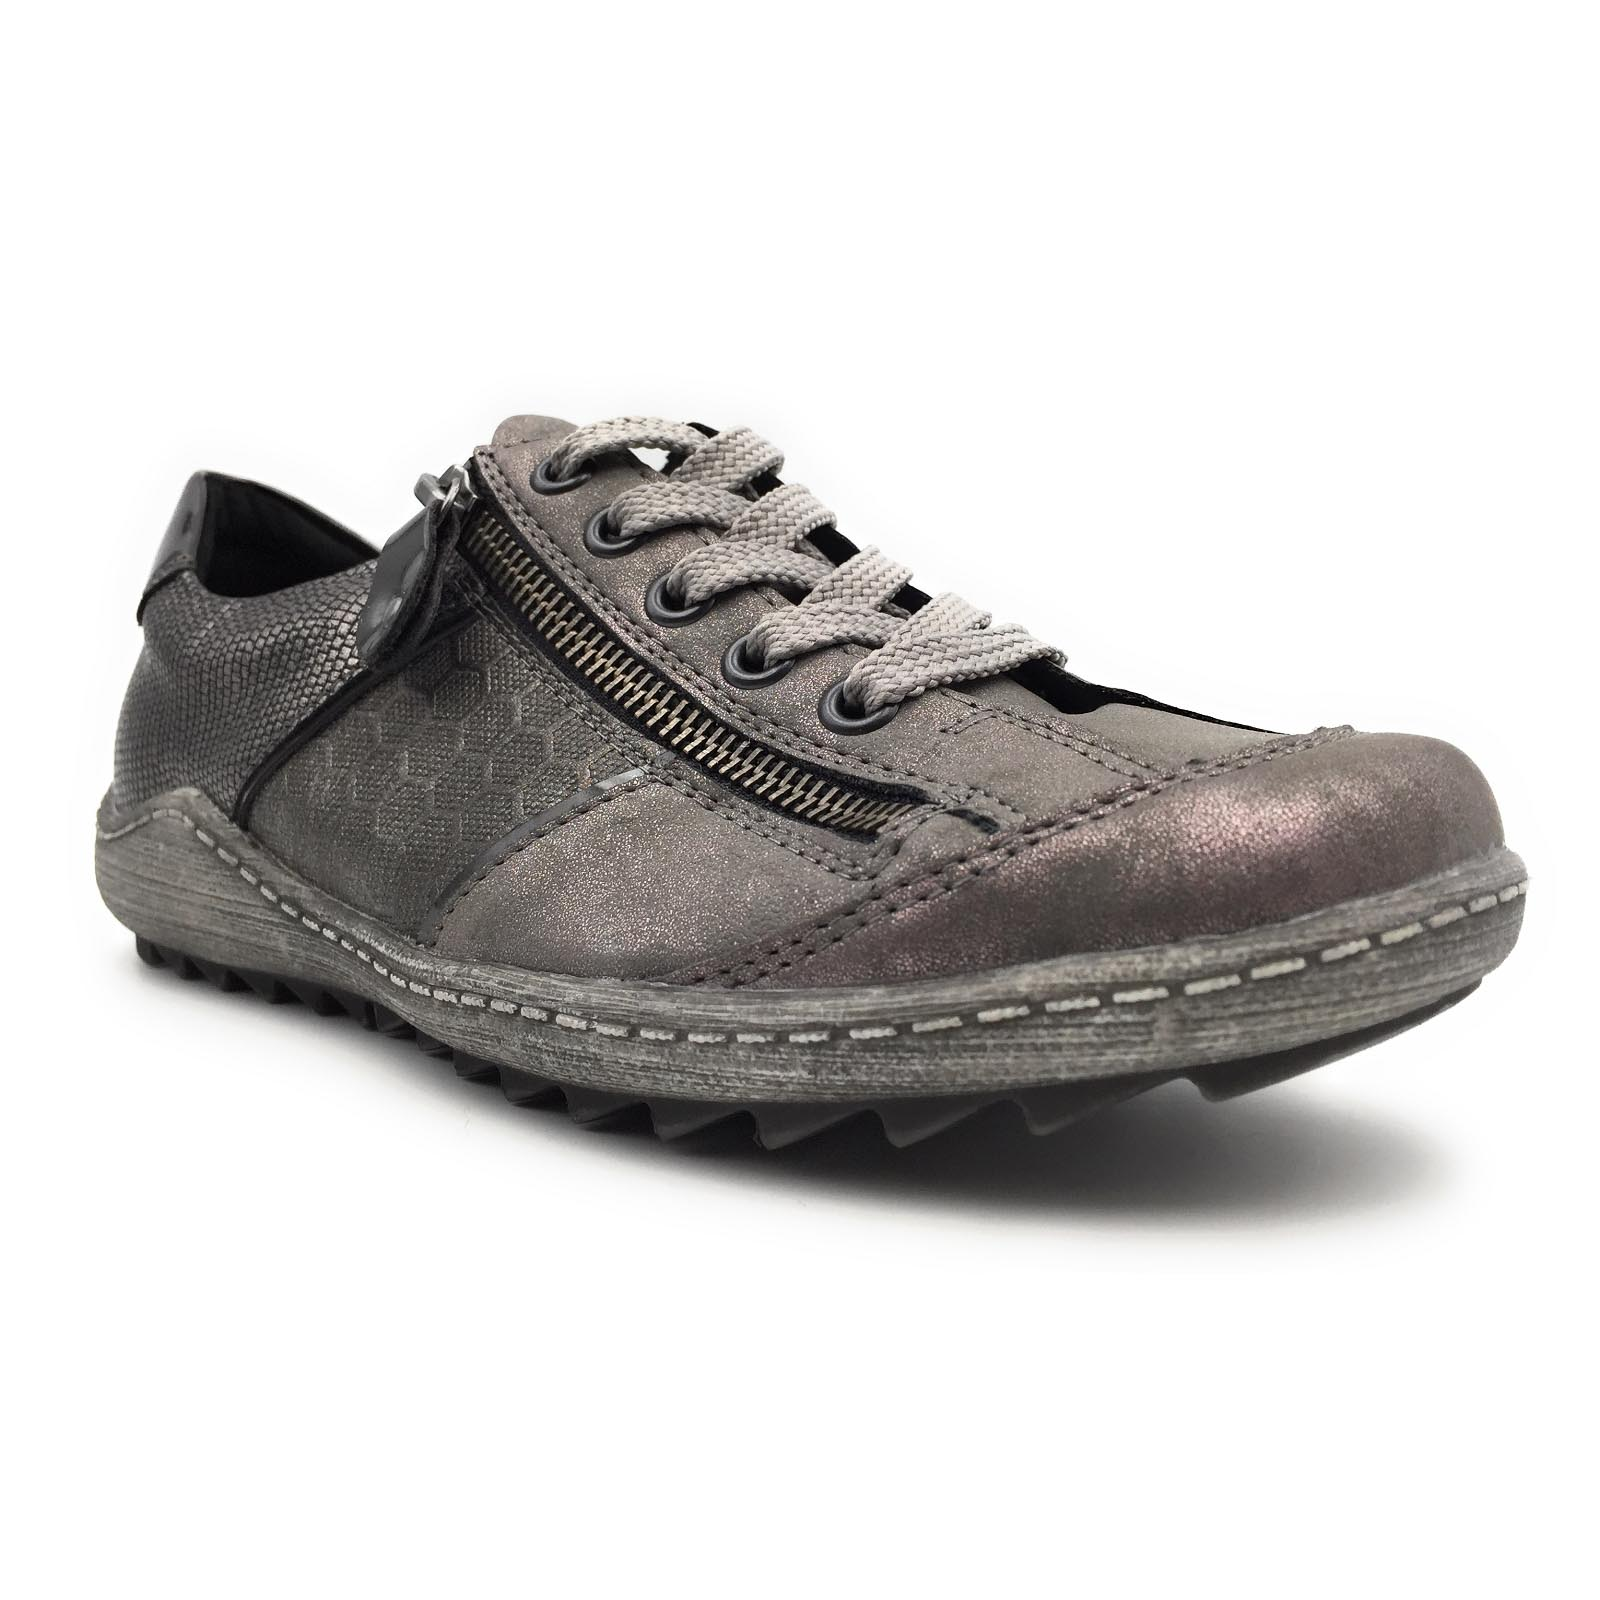 Remonte baskets mode r1414 gris